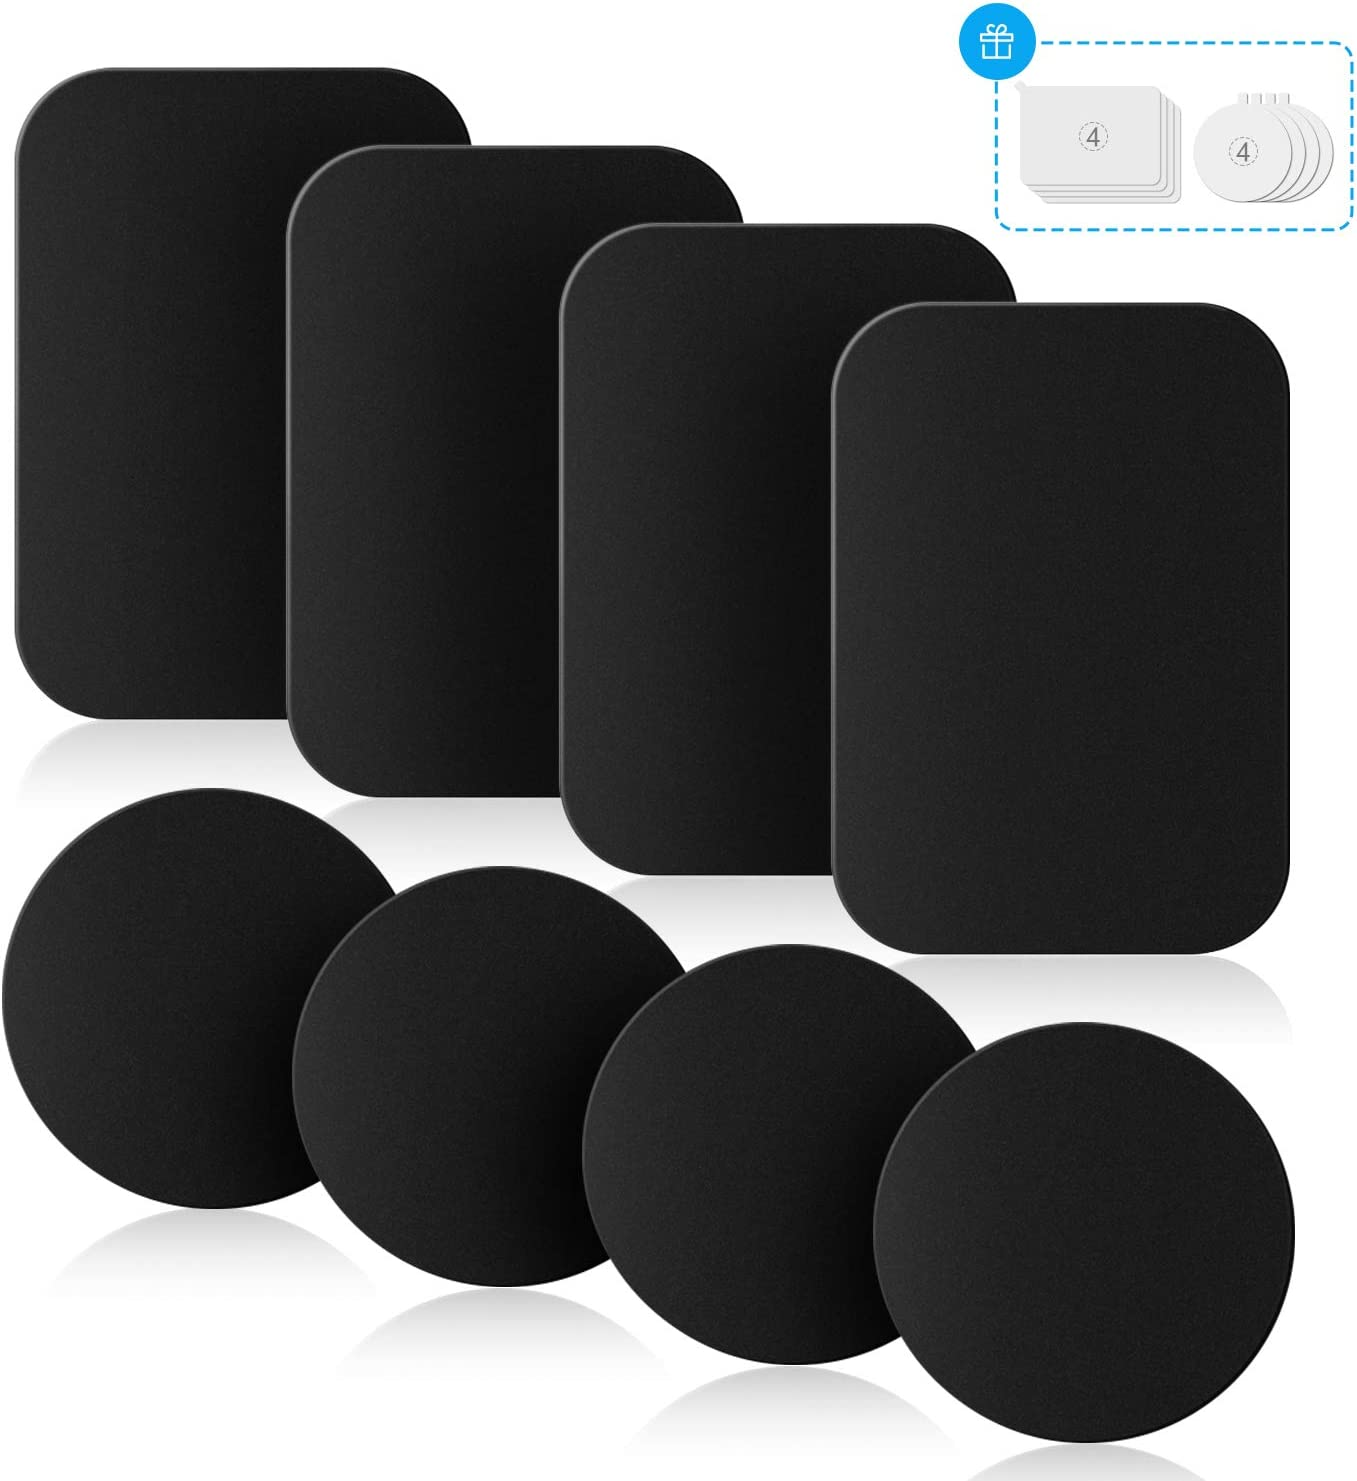 8 Pack Universal Metal Disc for Phone Magnetic Car Mount Replacement Sticker 8 Black Metal Plates and 8 Clear Films Mount Metal Plates with Protective Films